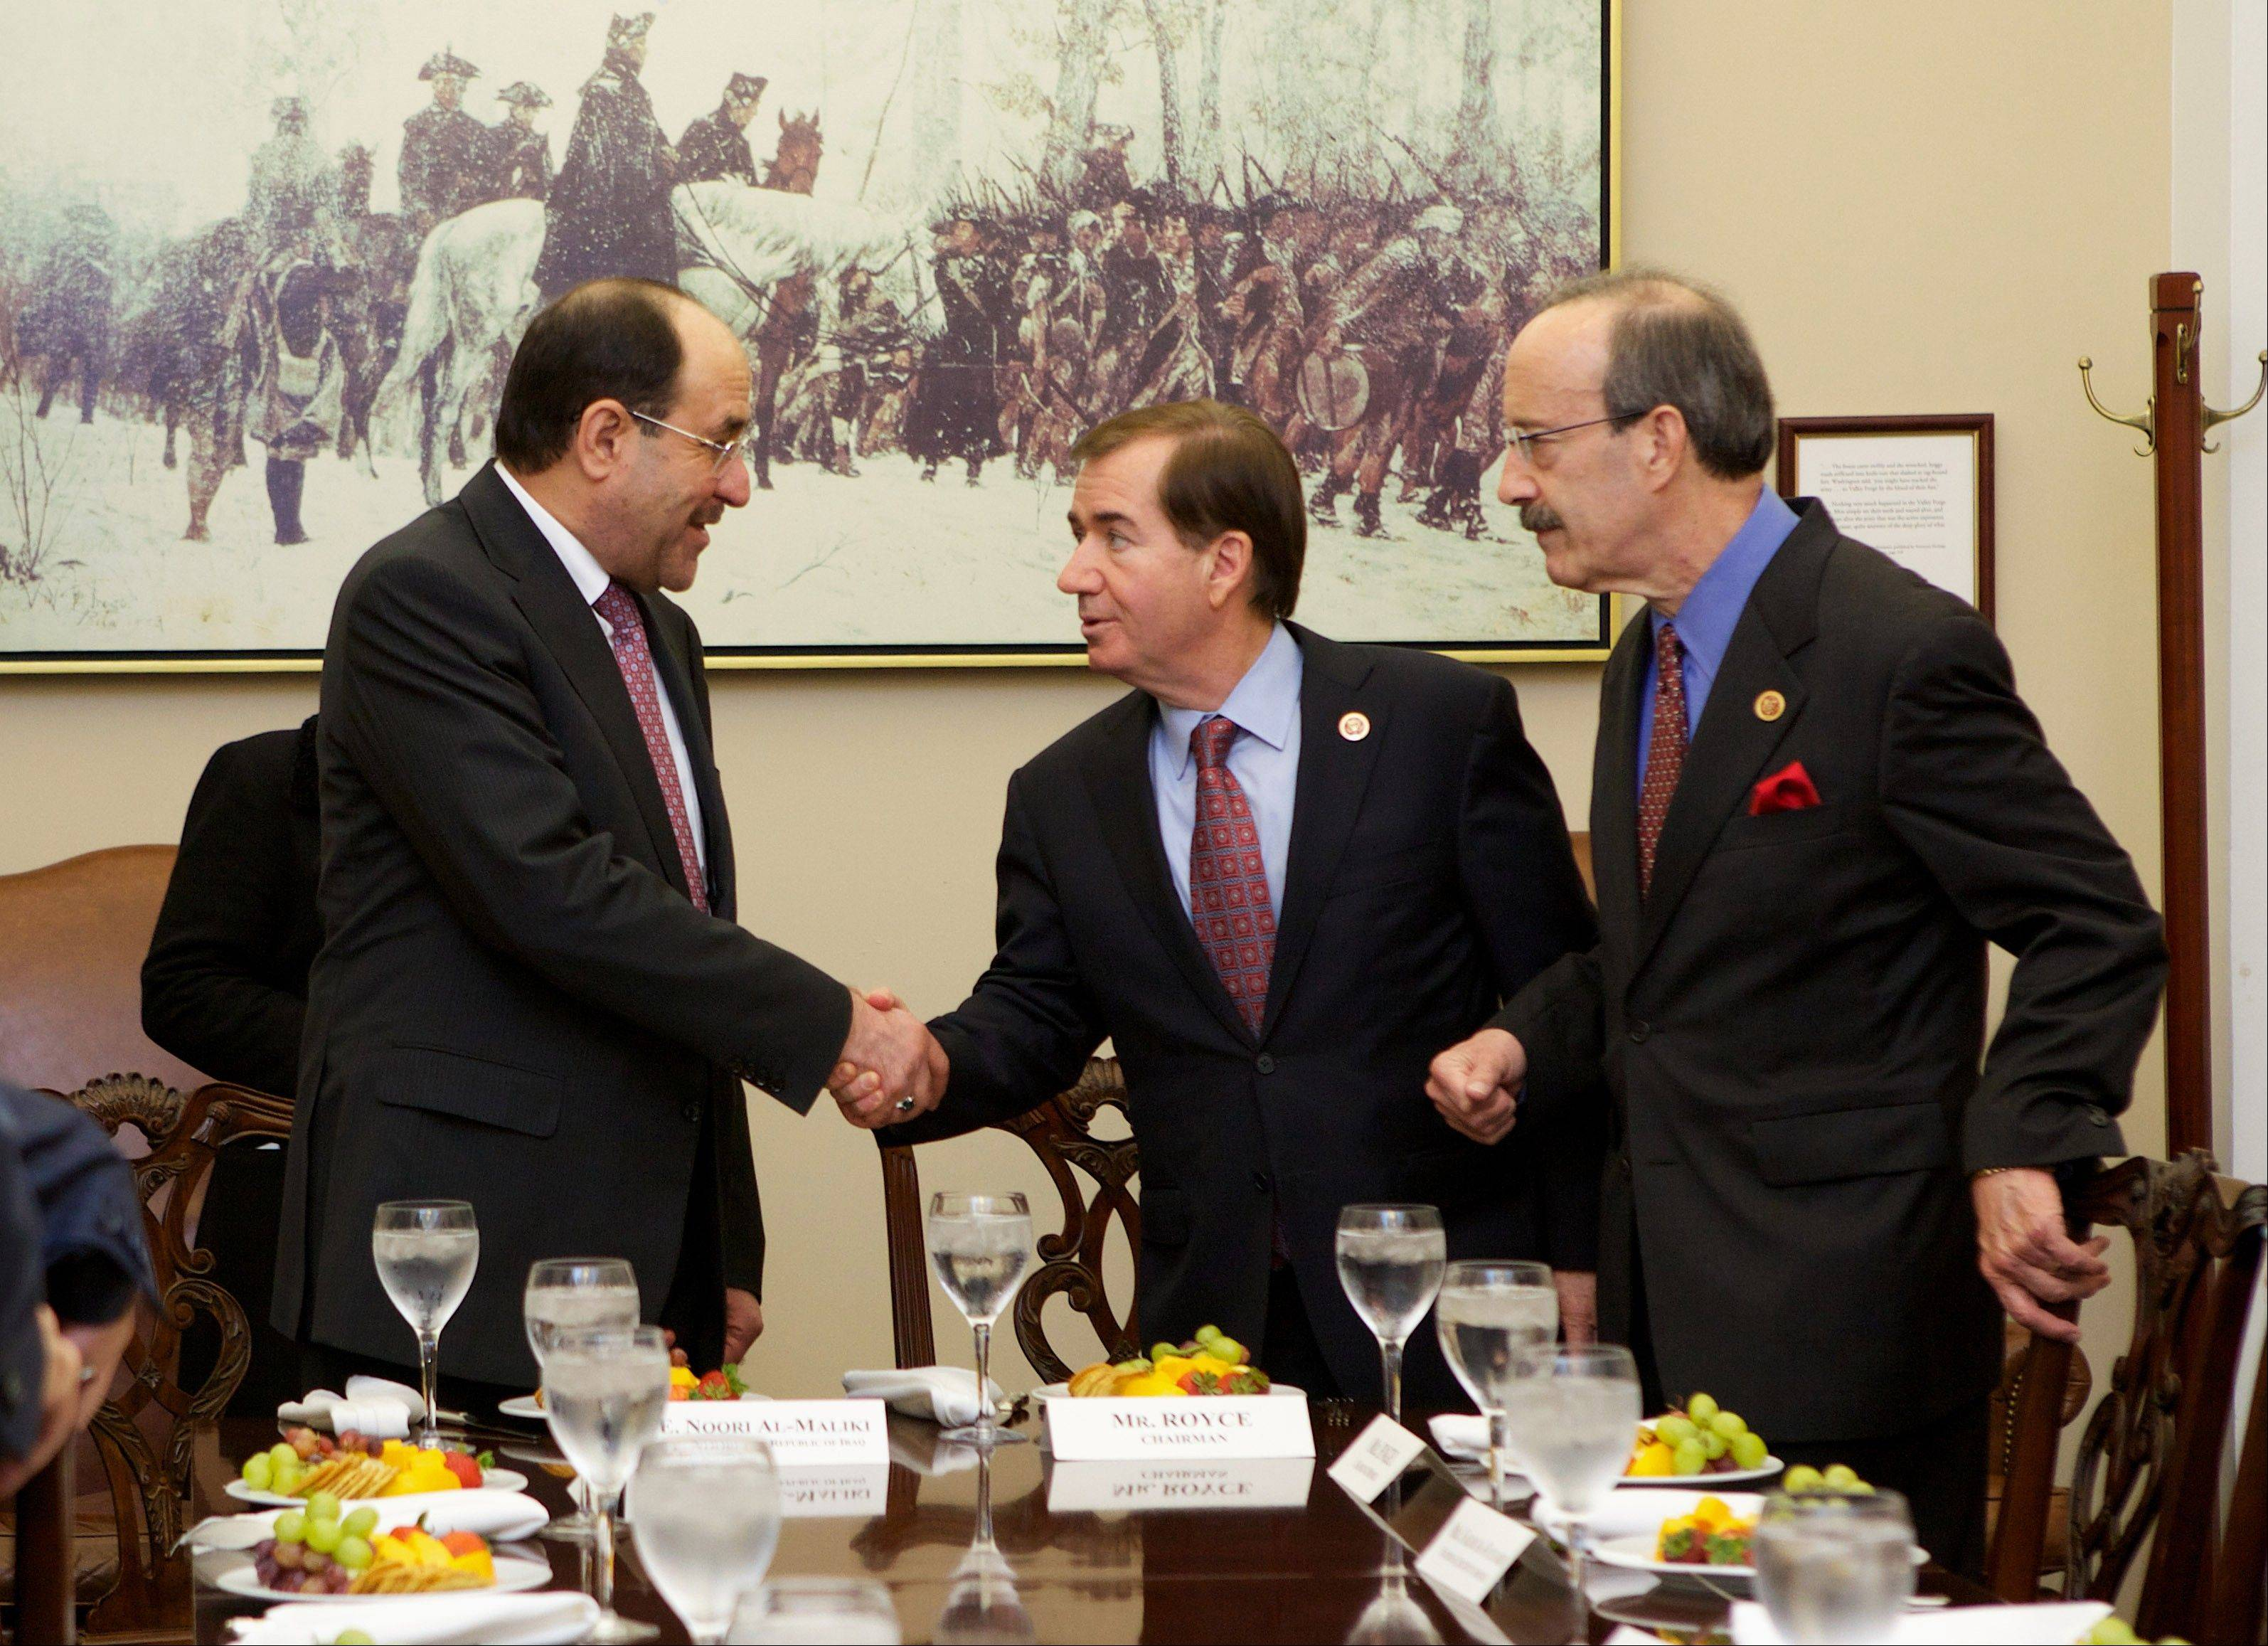 Iraq�s Prime Minister Nouri al-Maliki, left, is greeted by House Foreign Affairs Committee Chairman Rep. Ed Royce of California, center, and the committee�s ranking Democrat, Rep. Eliot Engel of New York, on Capitol Hill Wednesday.